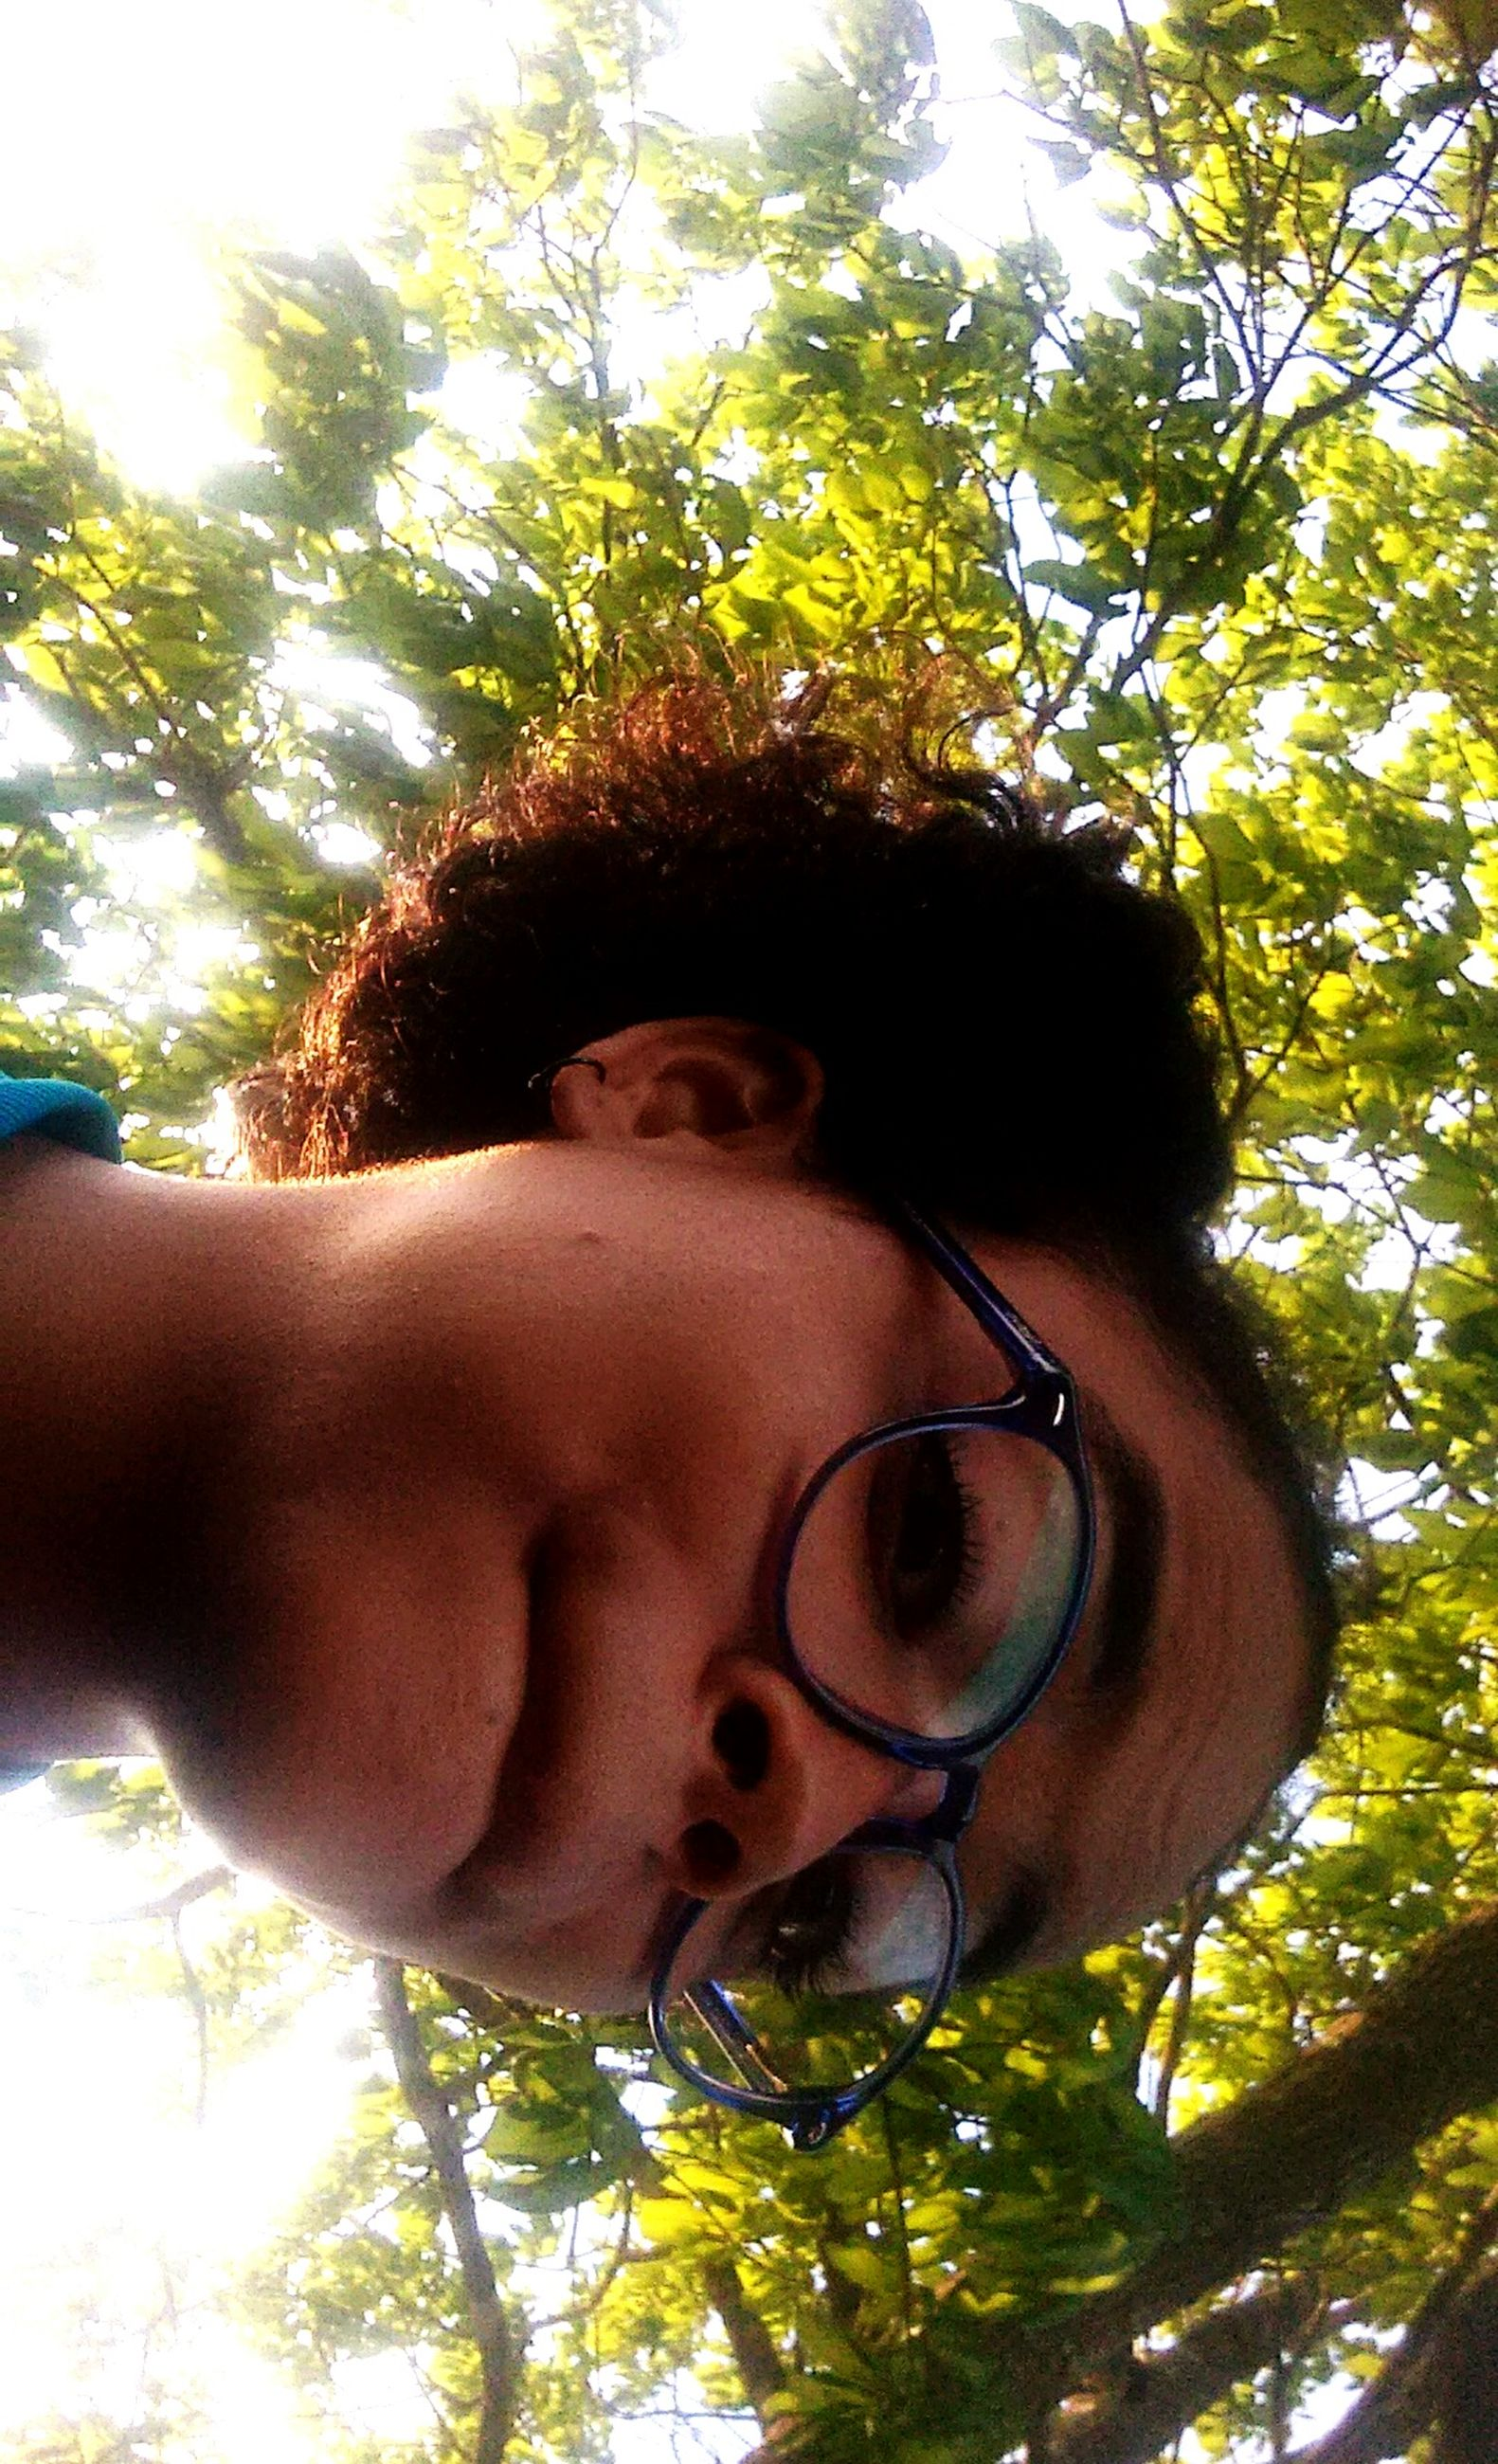 tree, one person, headshot, young adult, plant, outdoors, day, real people, nature, close-up, people